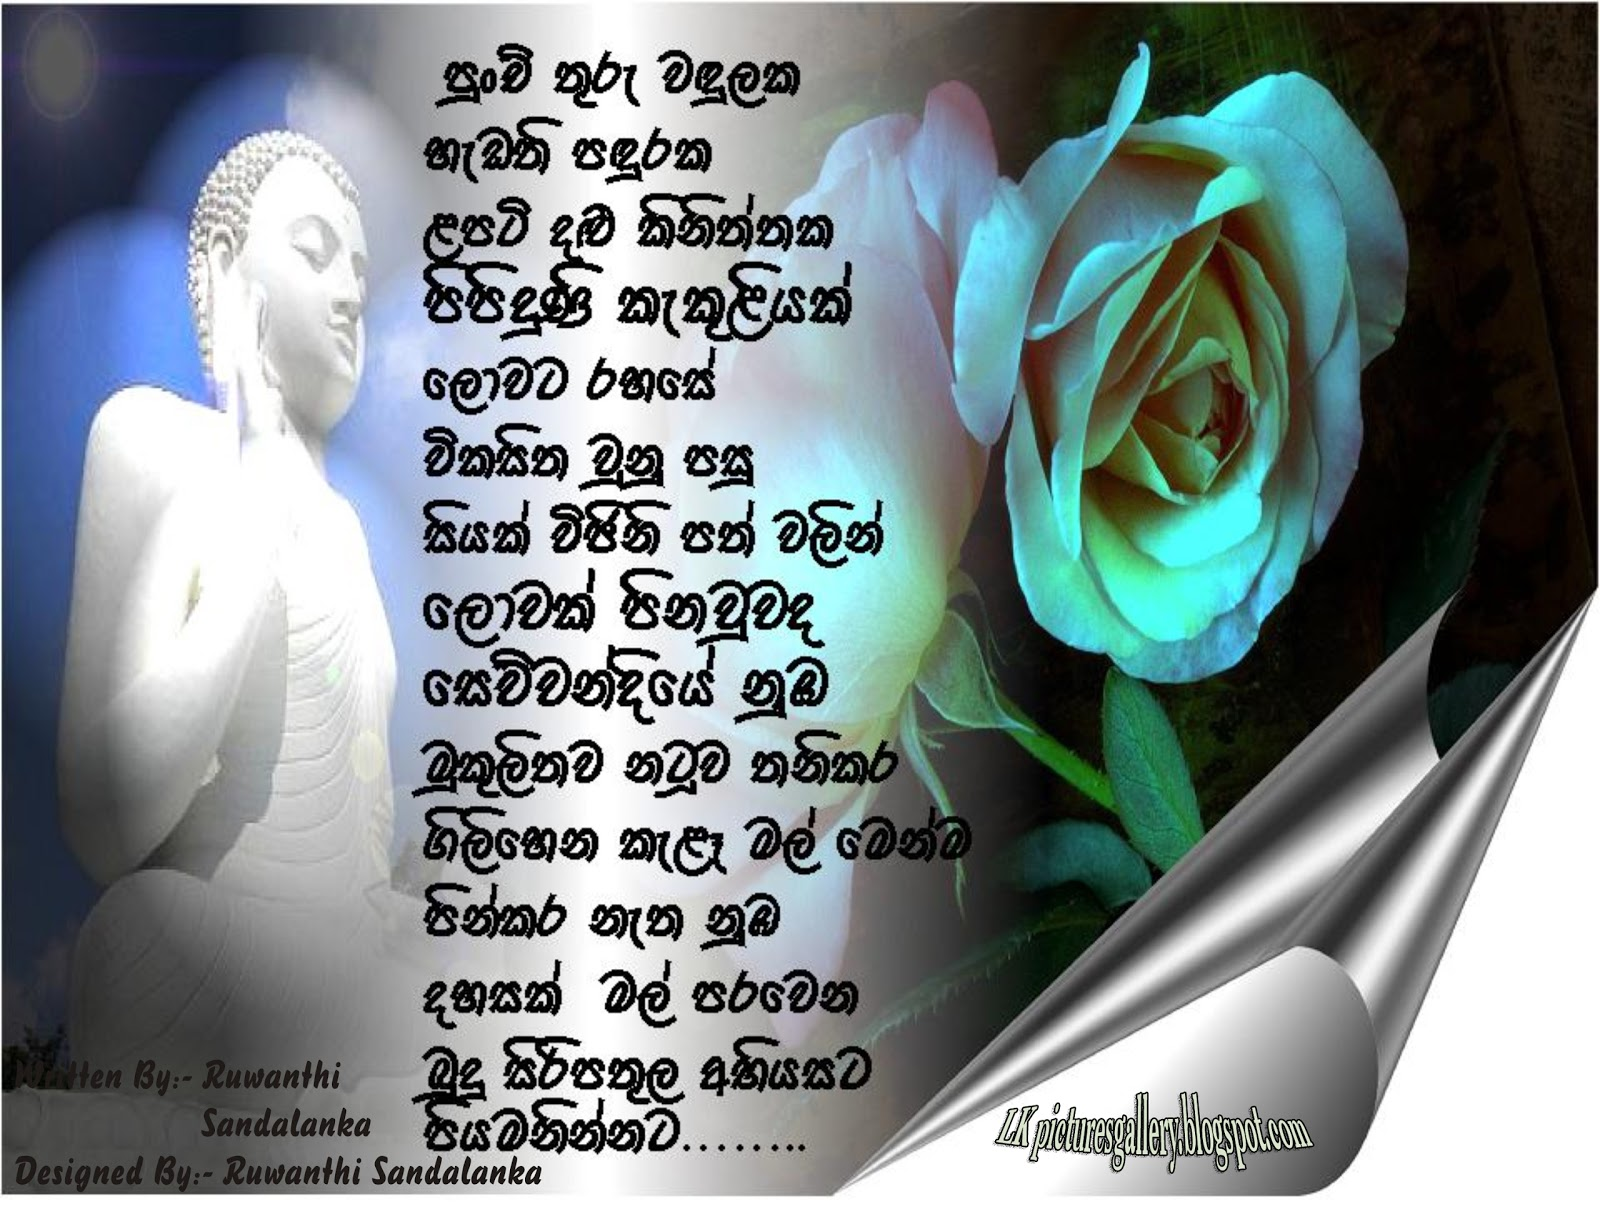 Sinhala Nisadas For Life Submited Images Pic Fly Genuardis Portal Pic